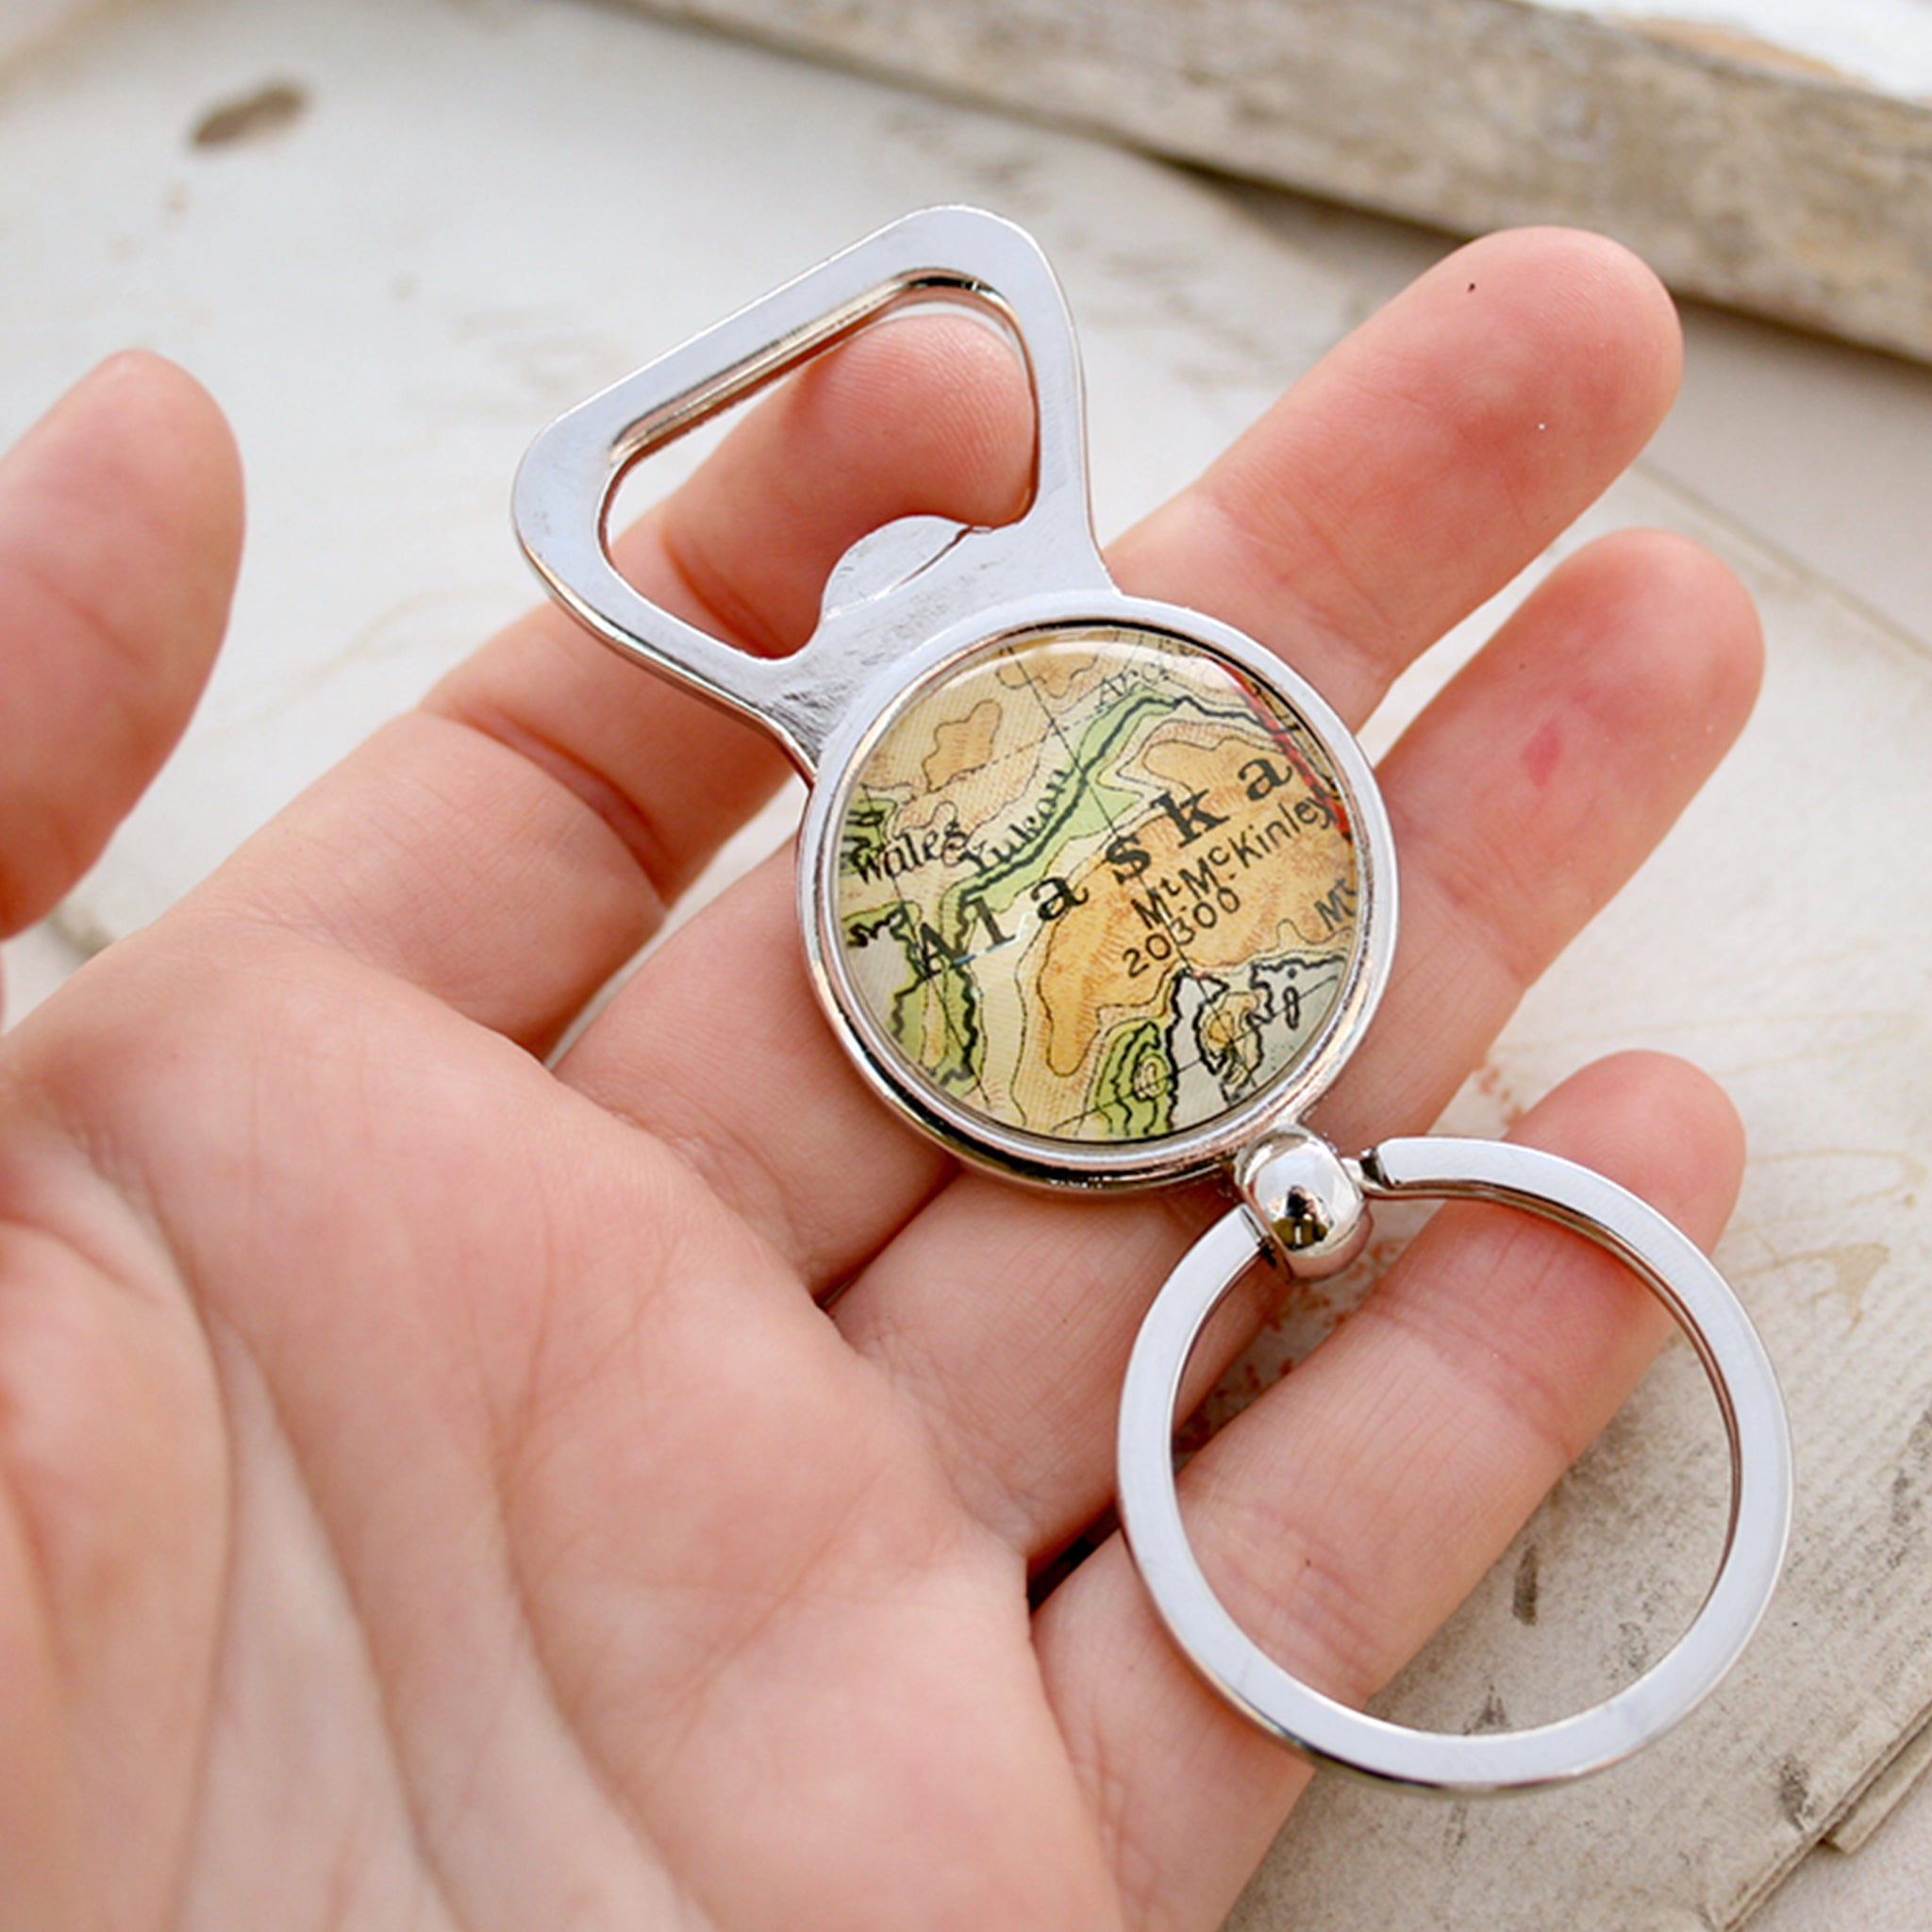 Hand holding personalised Bottle Opener with map of Alaska featured